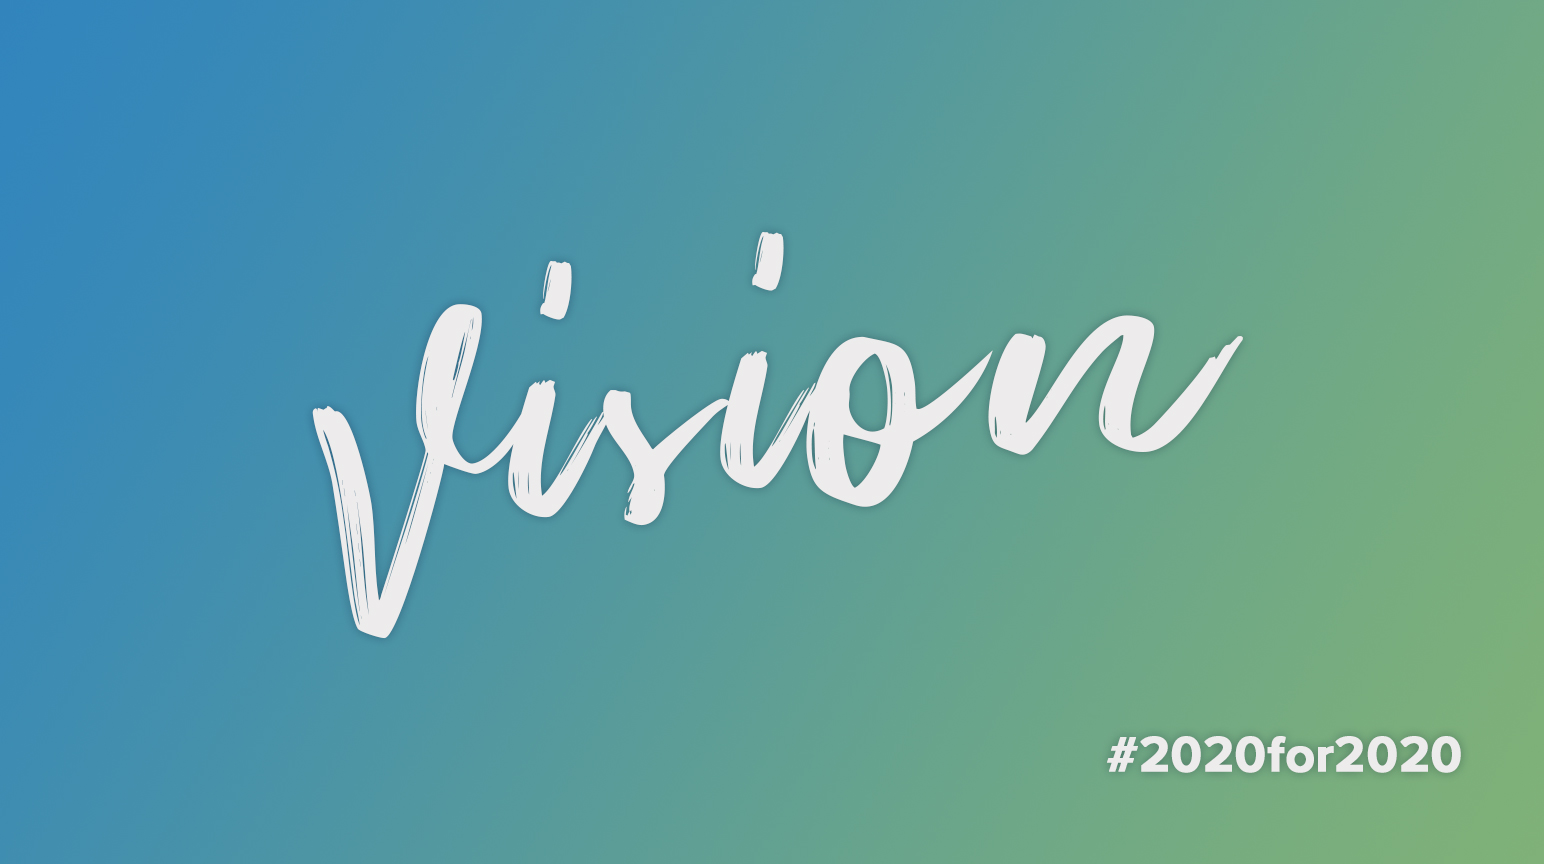 Why Not Make 20/20 Vision Your Goal In 2020?